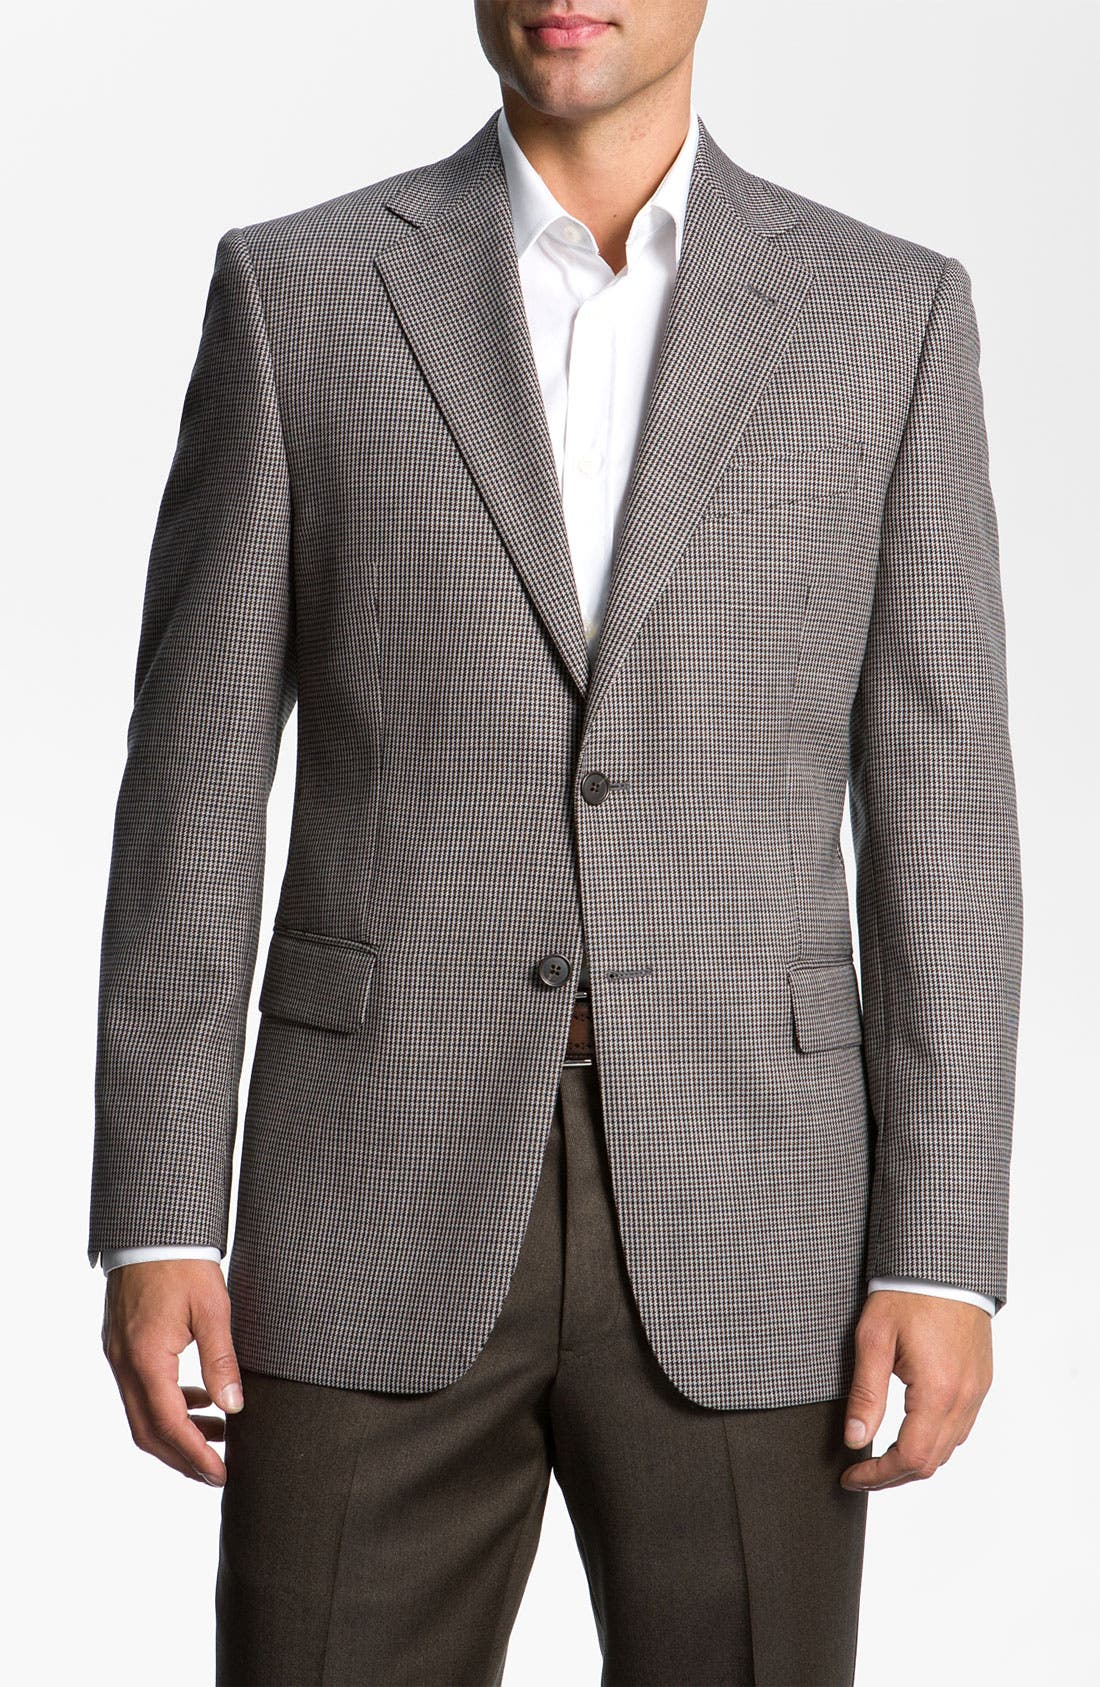 Alternate Image 1 Selected - Joseph Abboud Houndstooth Sportcoat